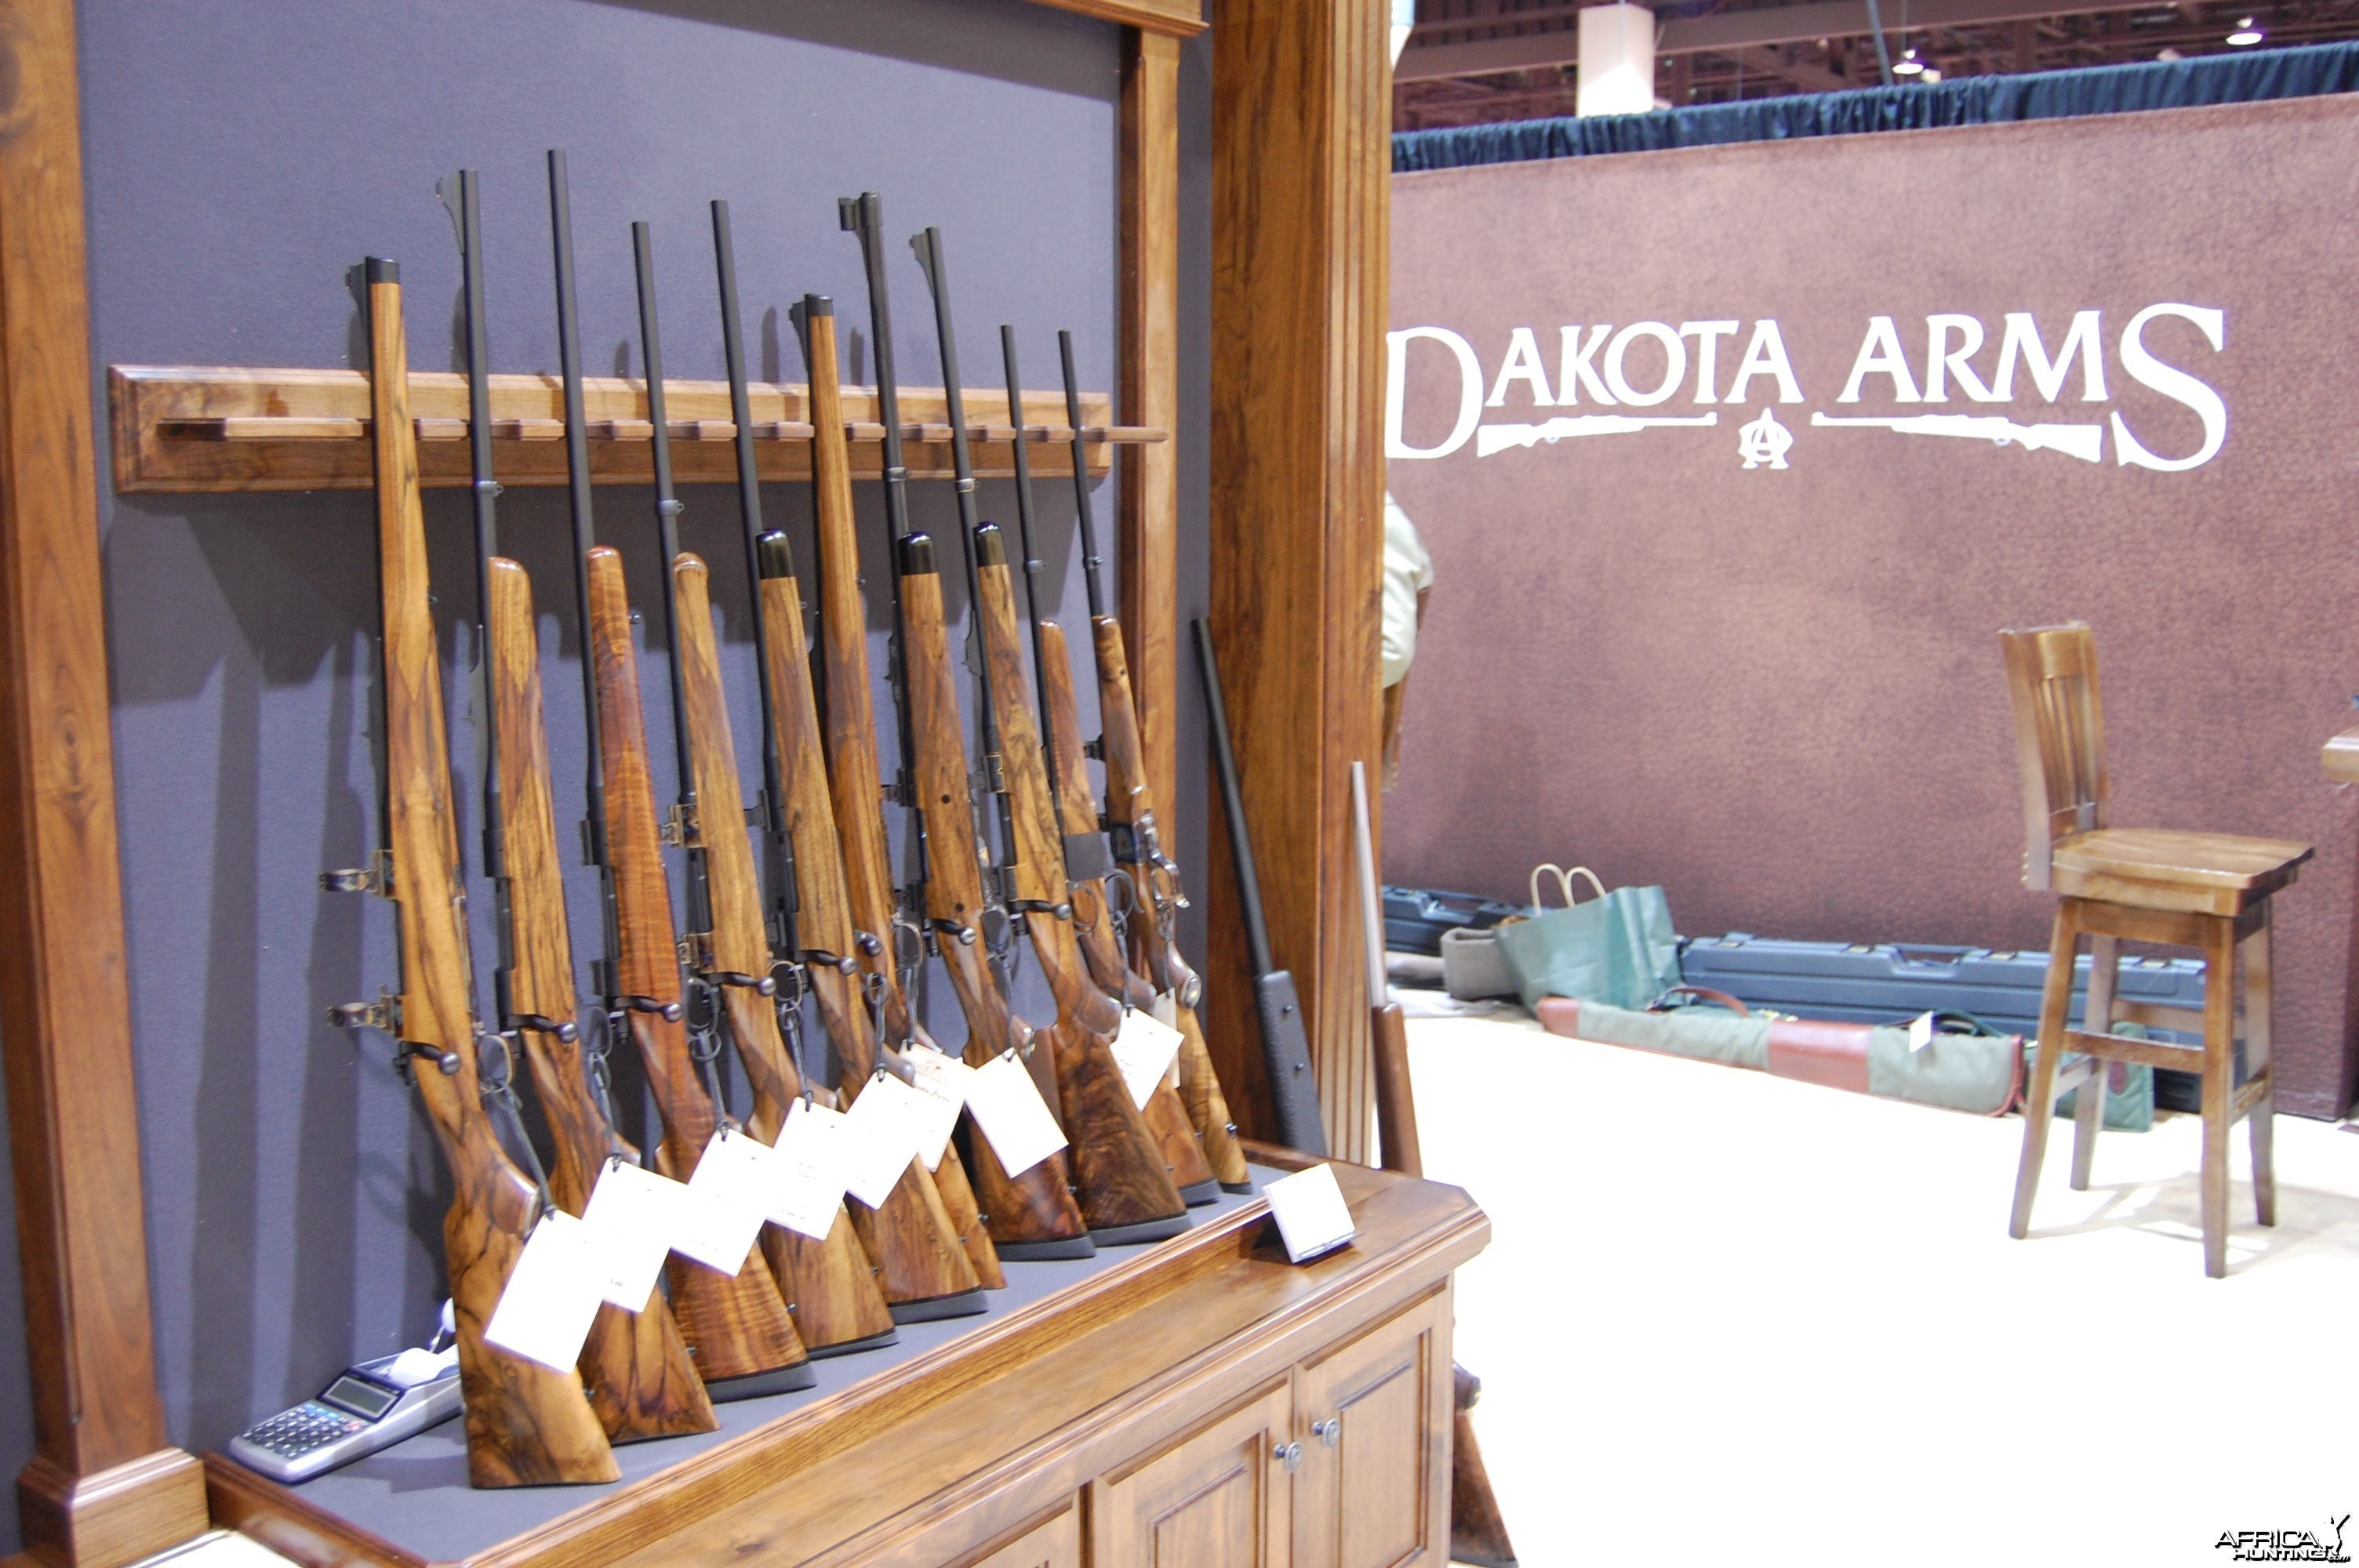 Dakota Arms